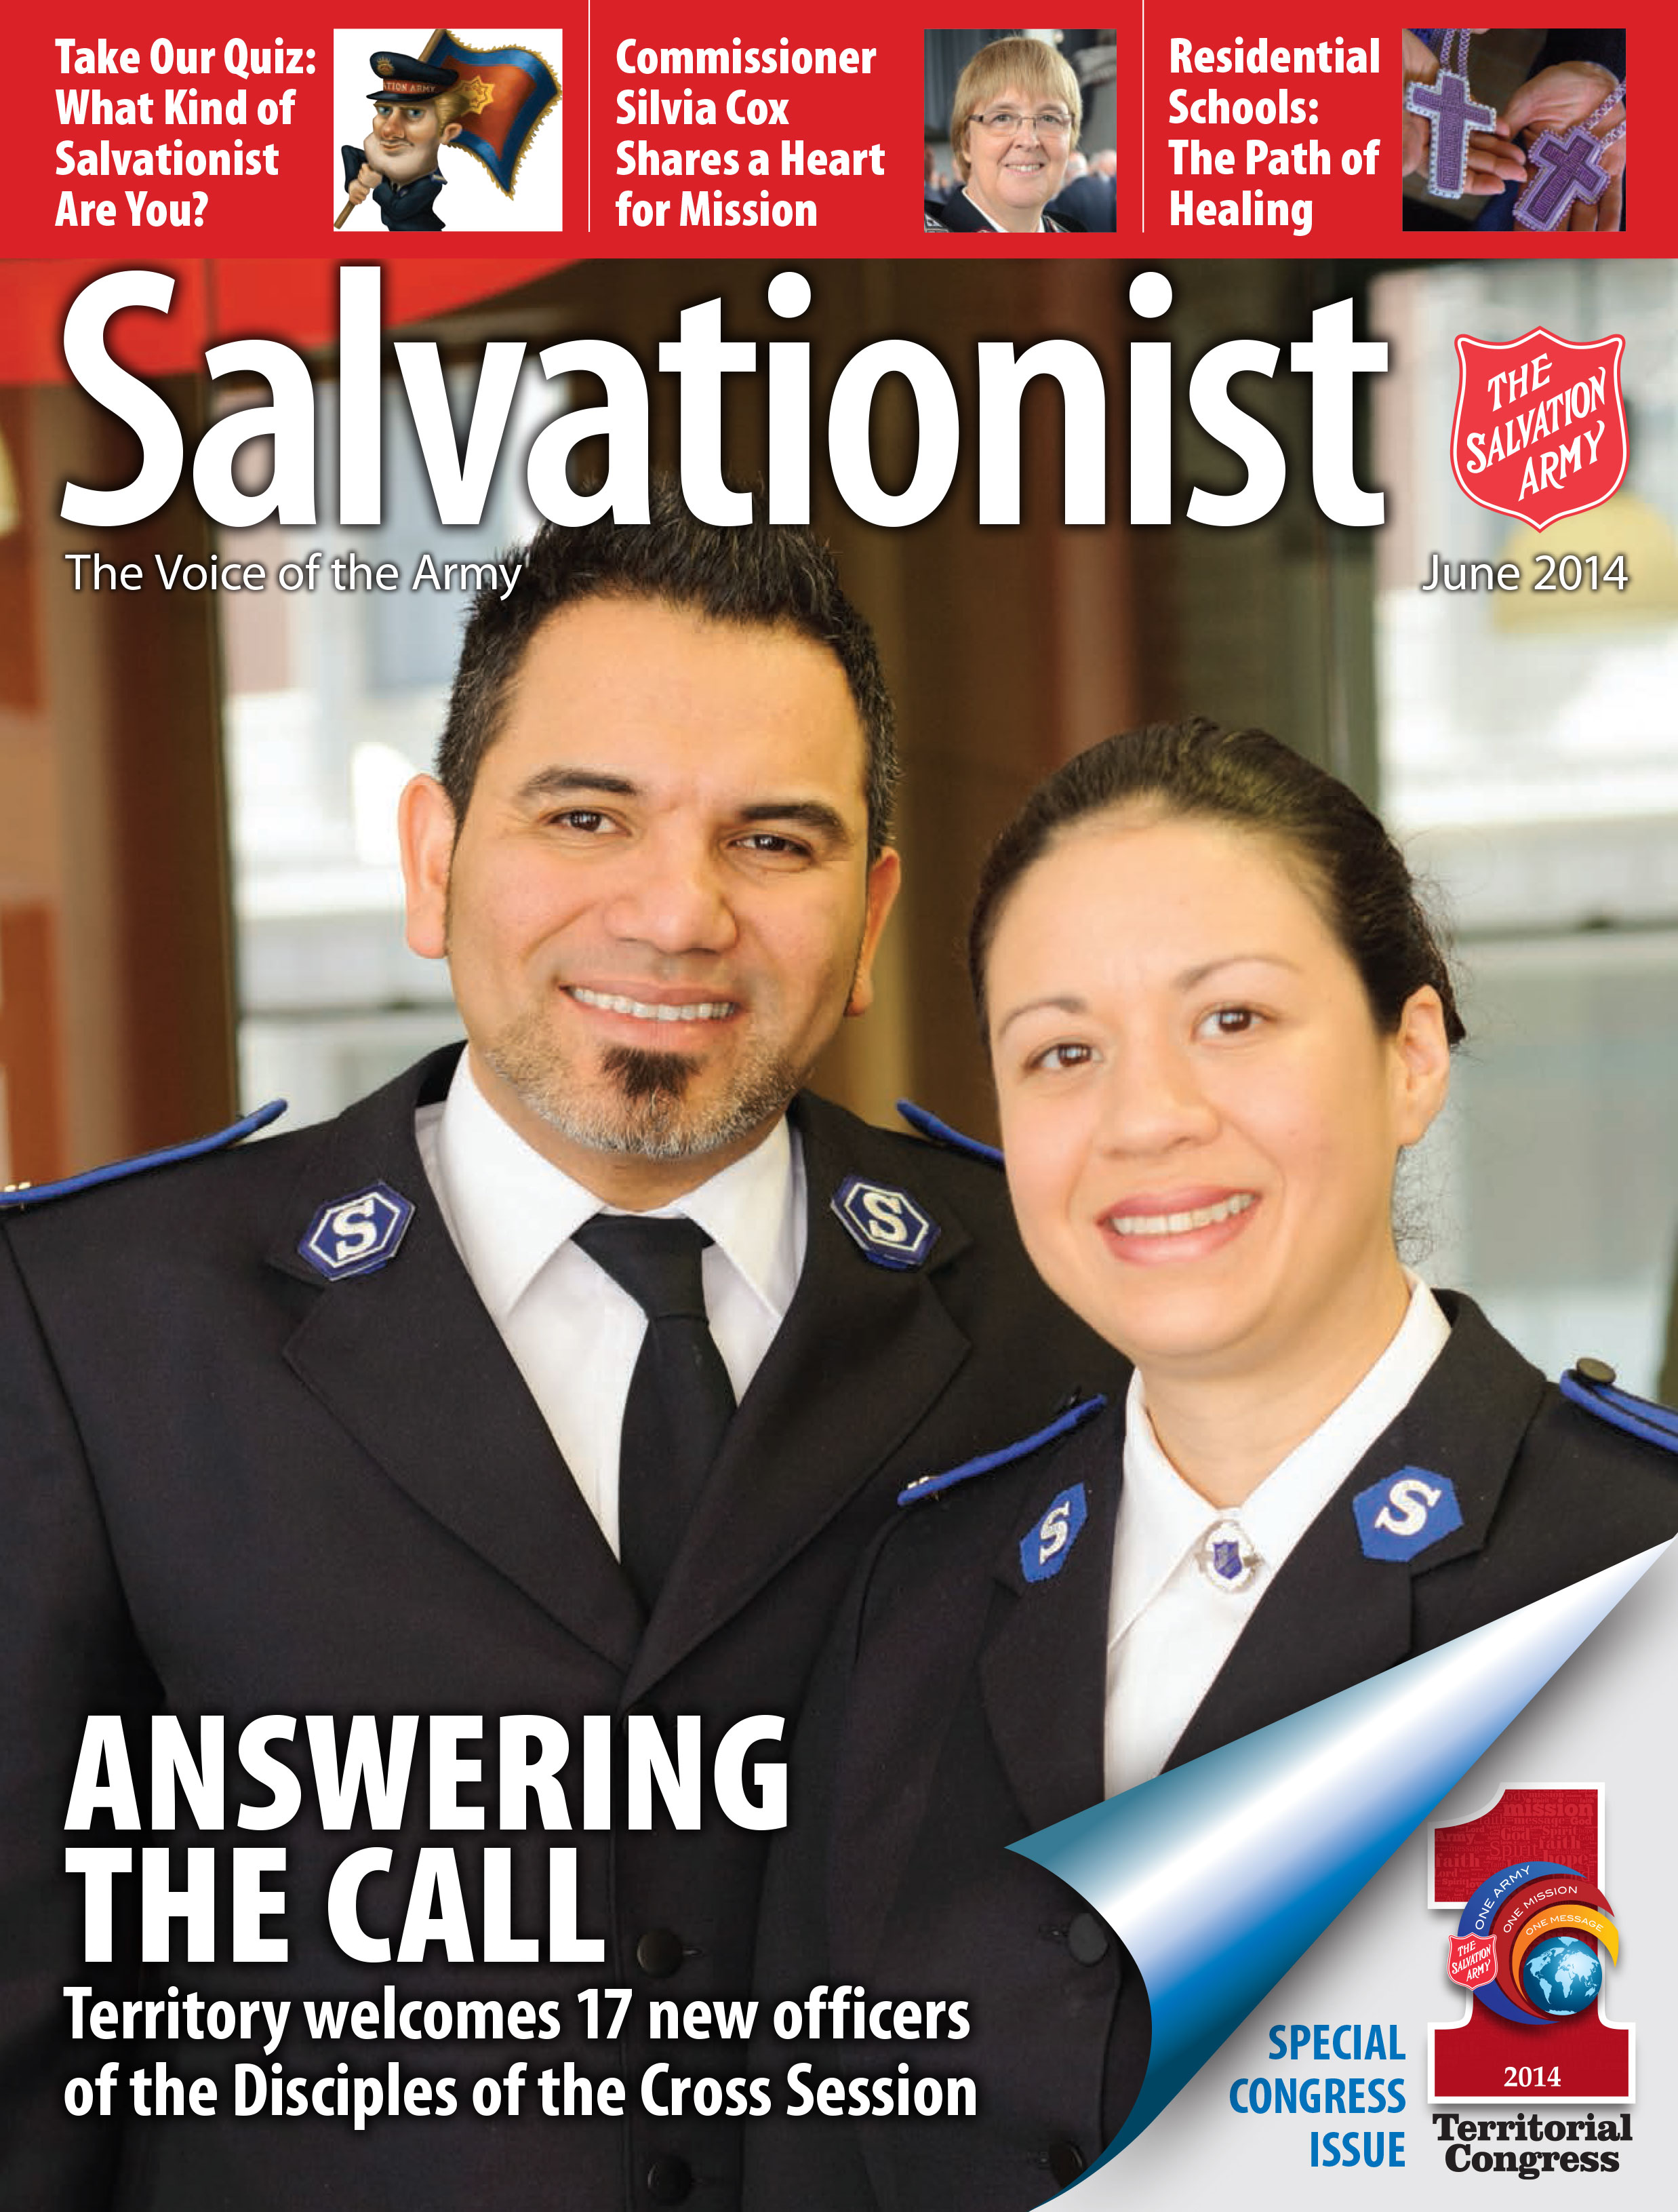 Cover for the June 2014 issue of Salvationist